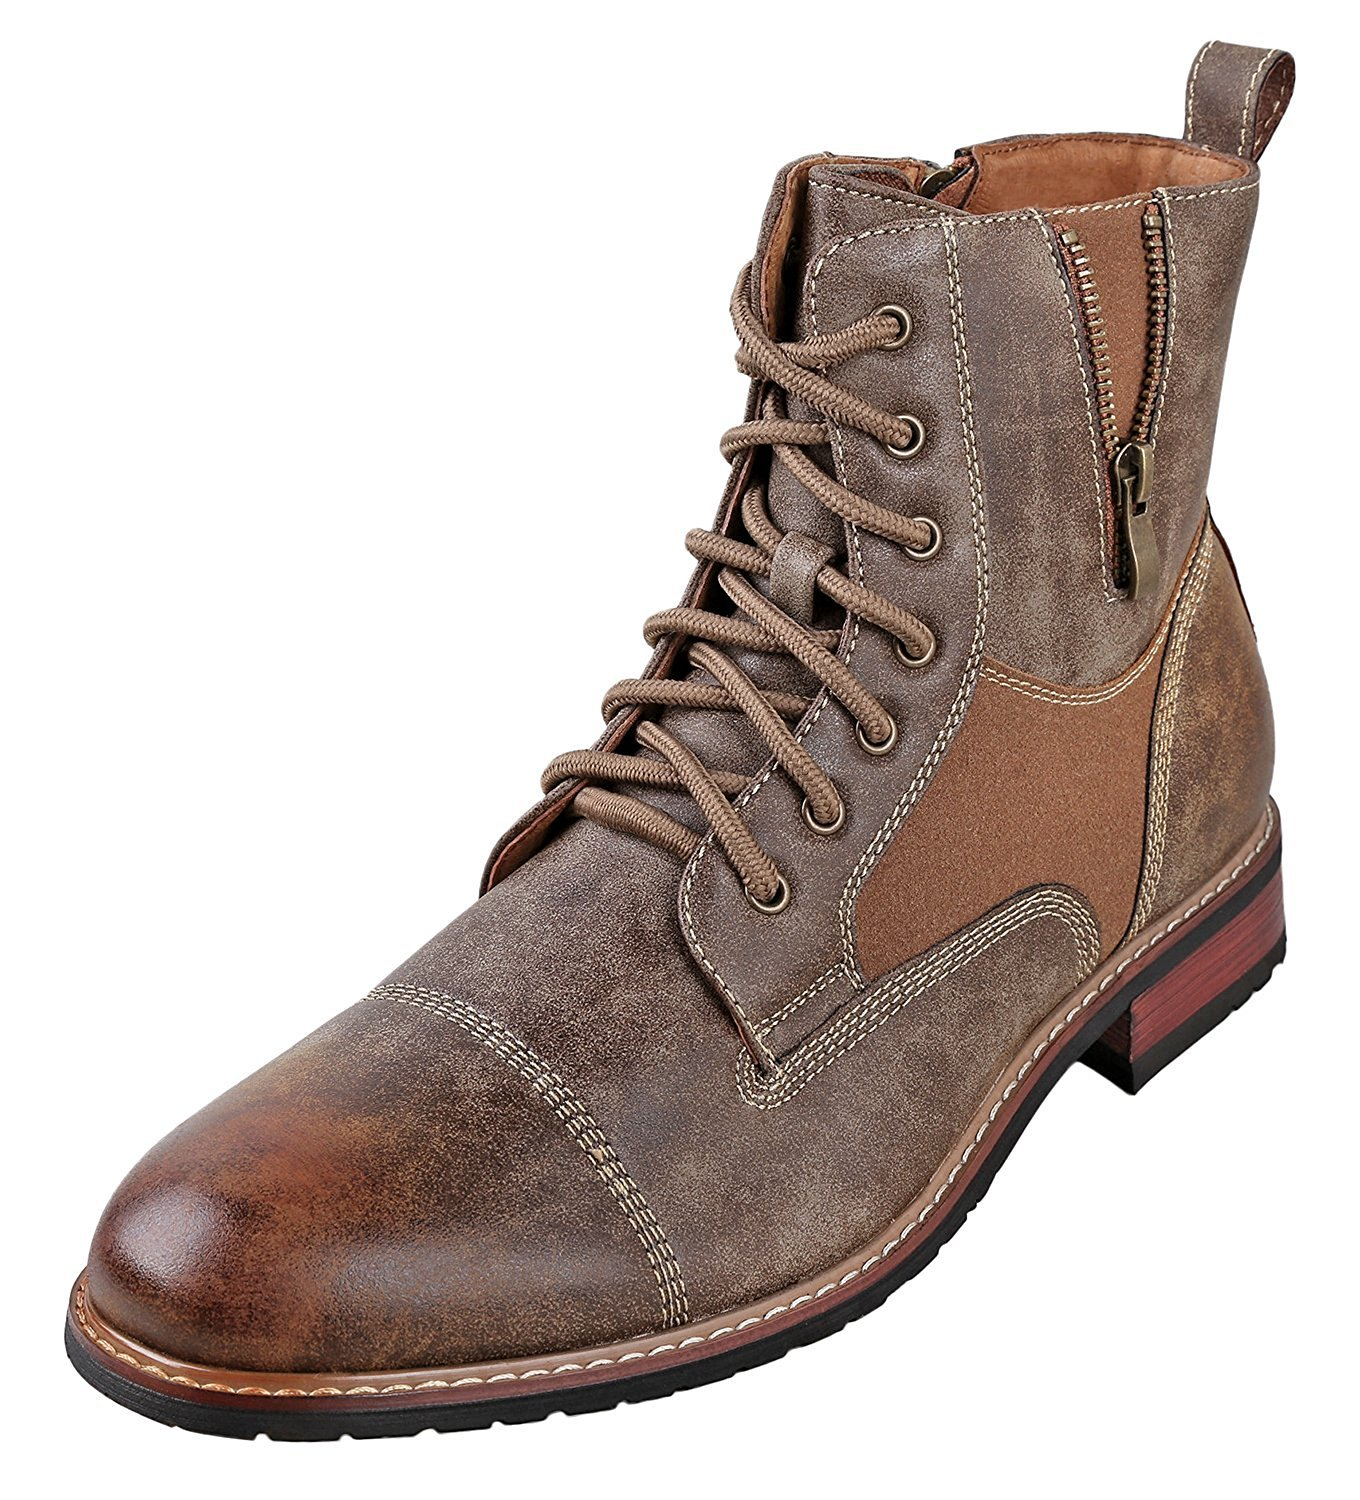 Ferro Aldo Andy Mens Ankle Boots | Combat | Lace Up | Fashion | Casual | Winter | Brown 12